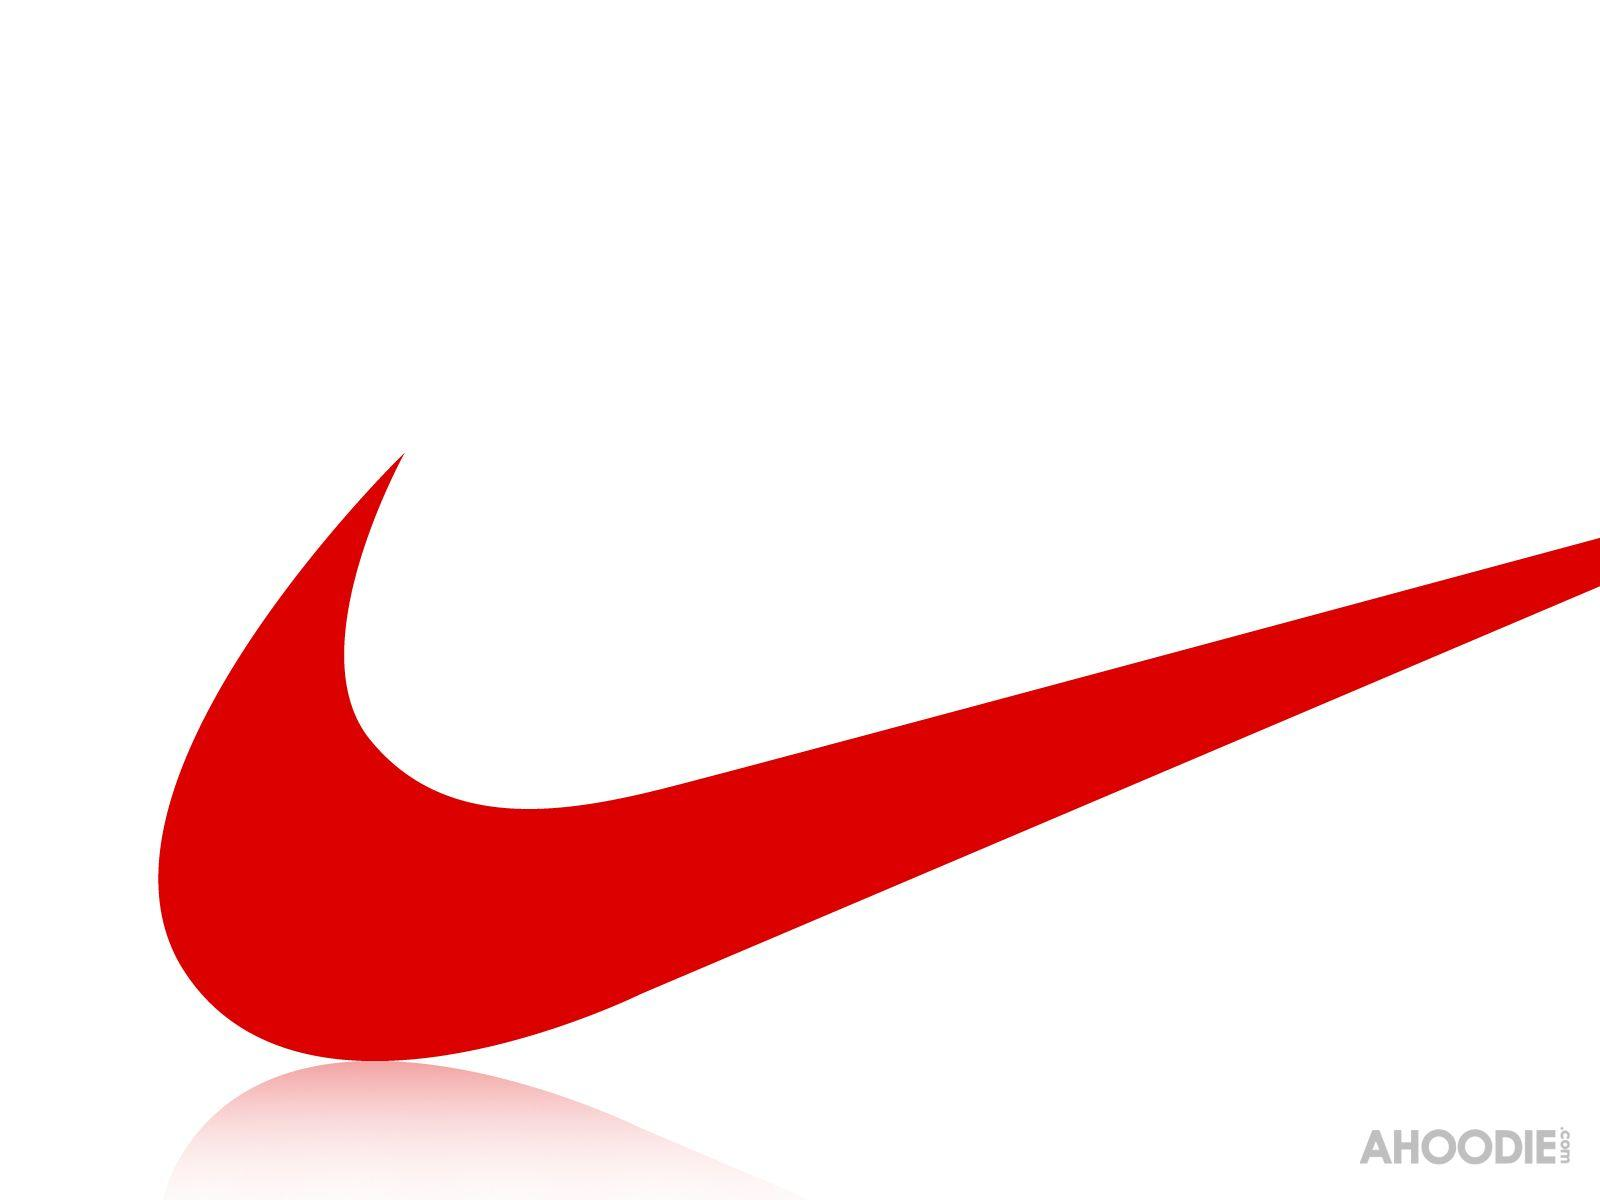 Image For > Nike Swoosh Wallpapers